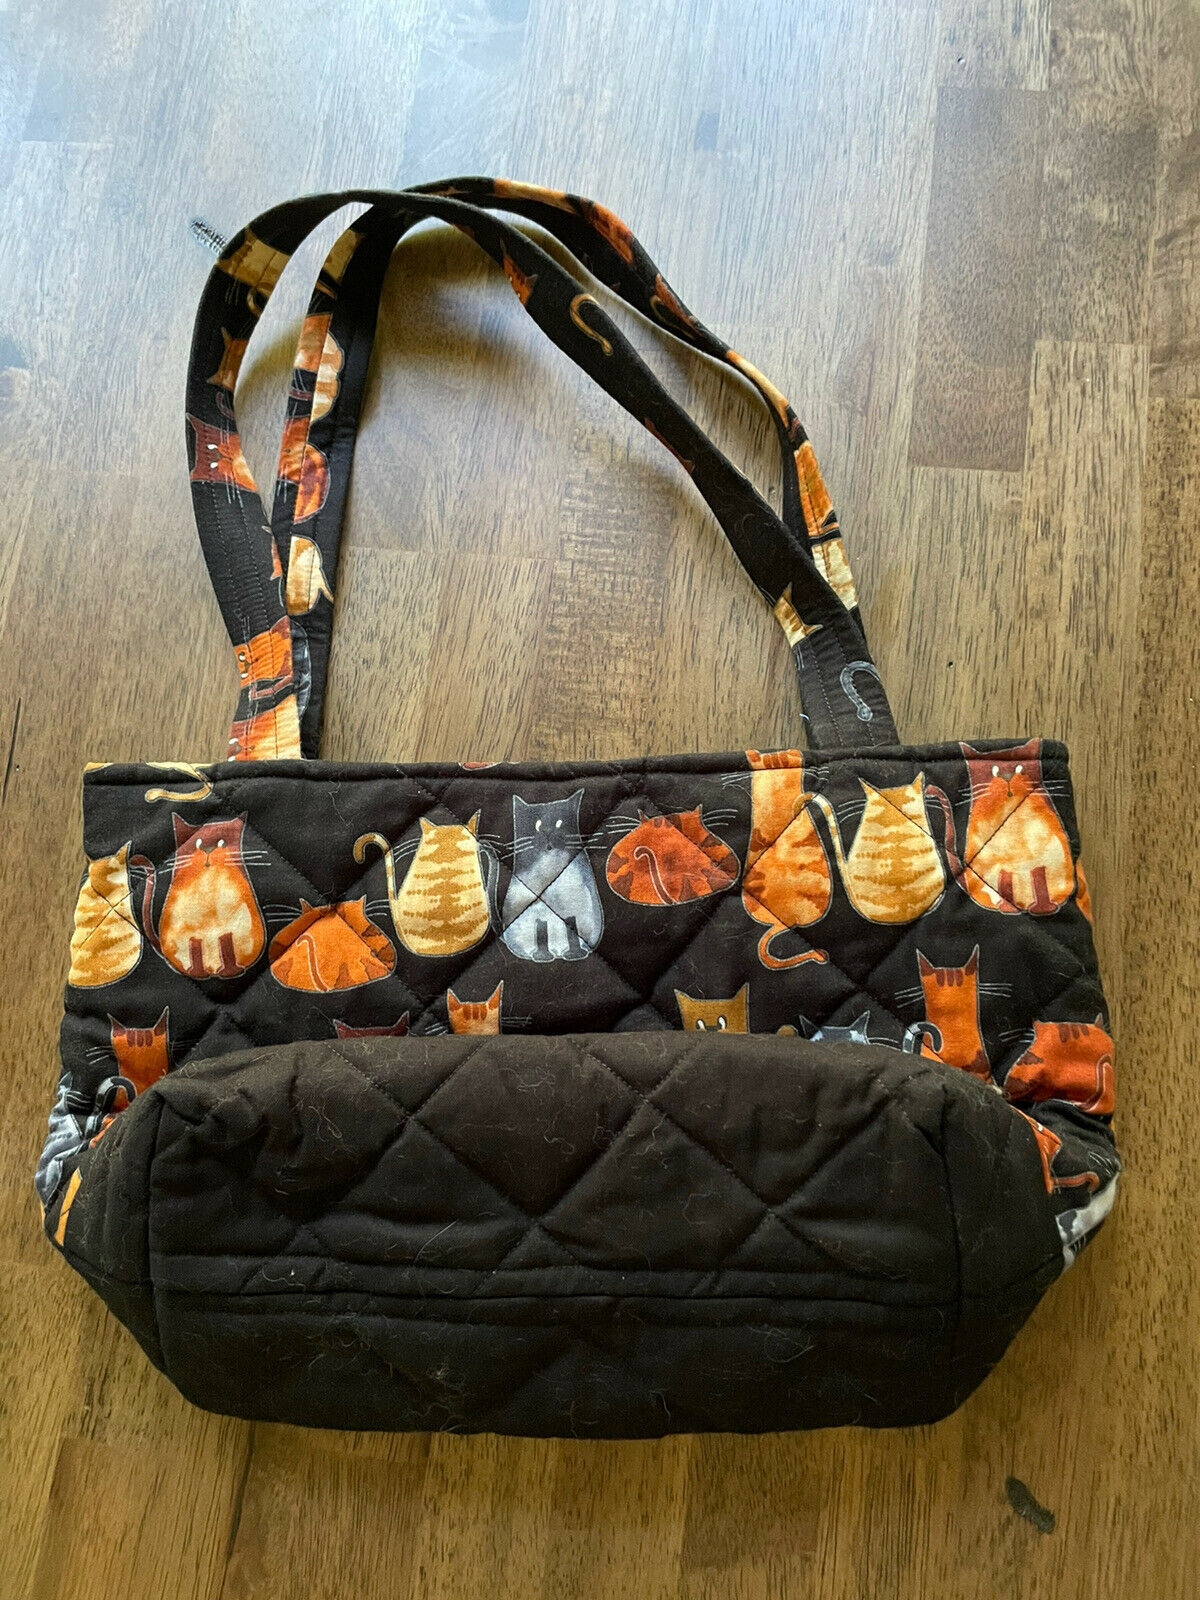 Kitten Cat Quilted Tote Purse Bag - image 2